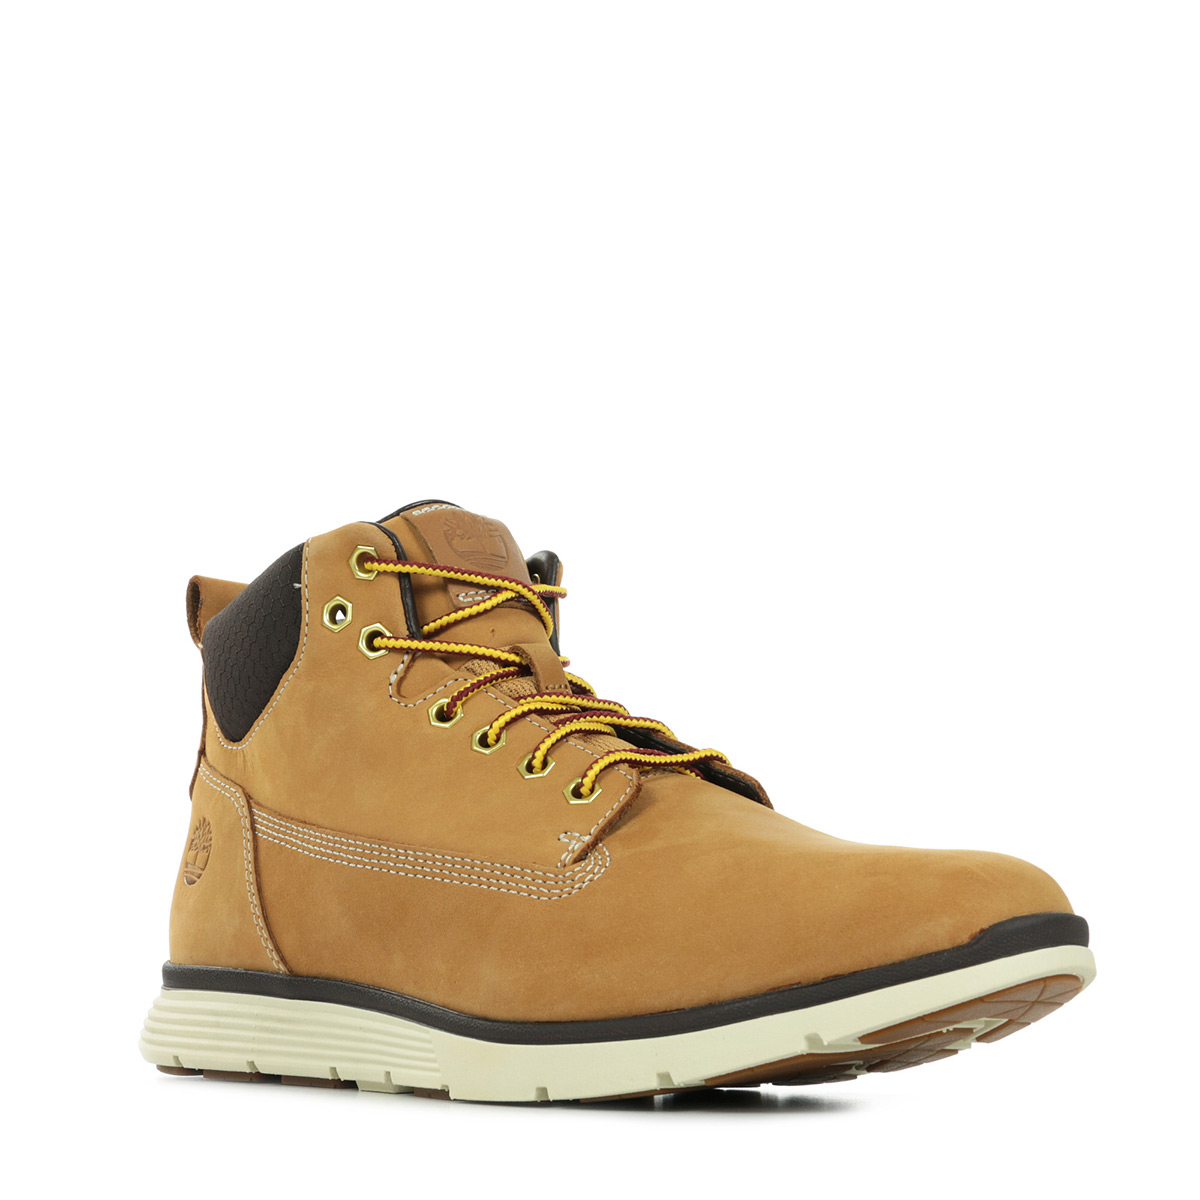 Timberland Killington Chukka Wheat Nubuck; Timberland Killington Chukka Wheat Nubuck